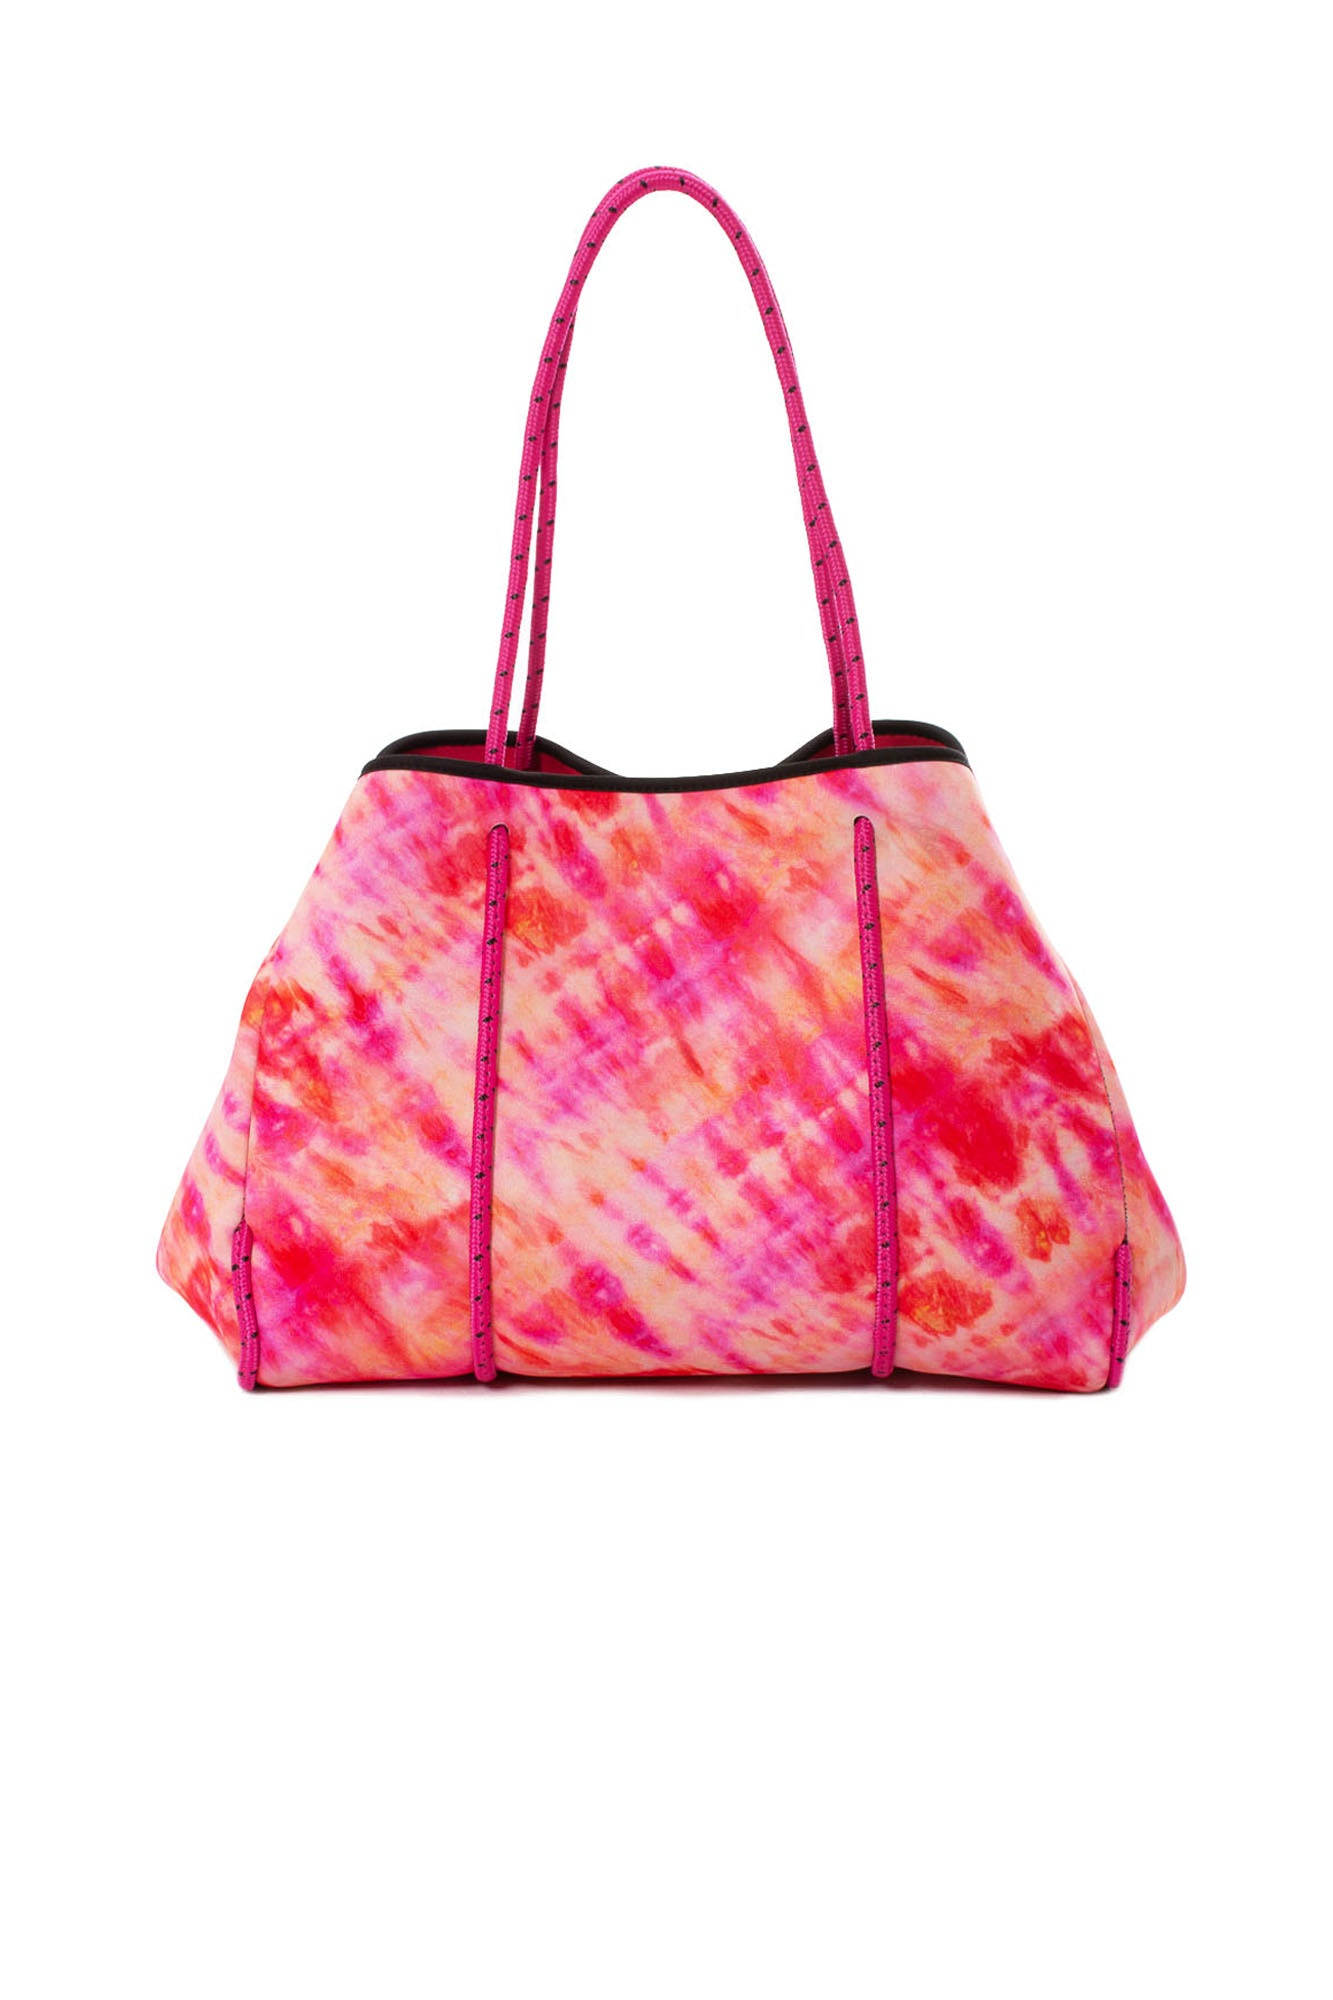 Haute Shore - Greyson Sunset Neoprene Tote Bag w/Tethered Removable Wristlet (GREYSON, Tie-Dye Red & Pink)